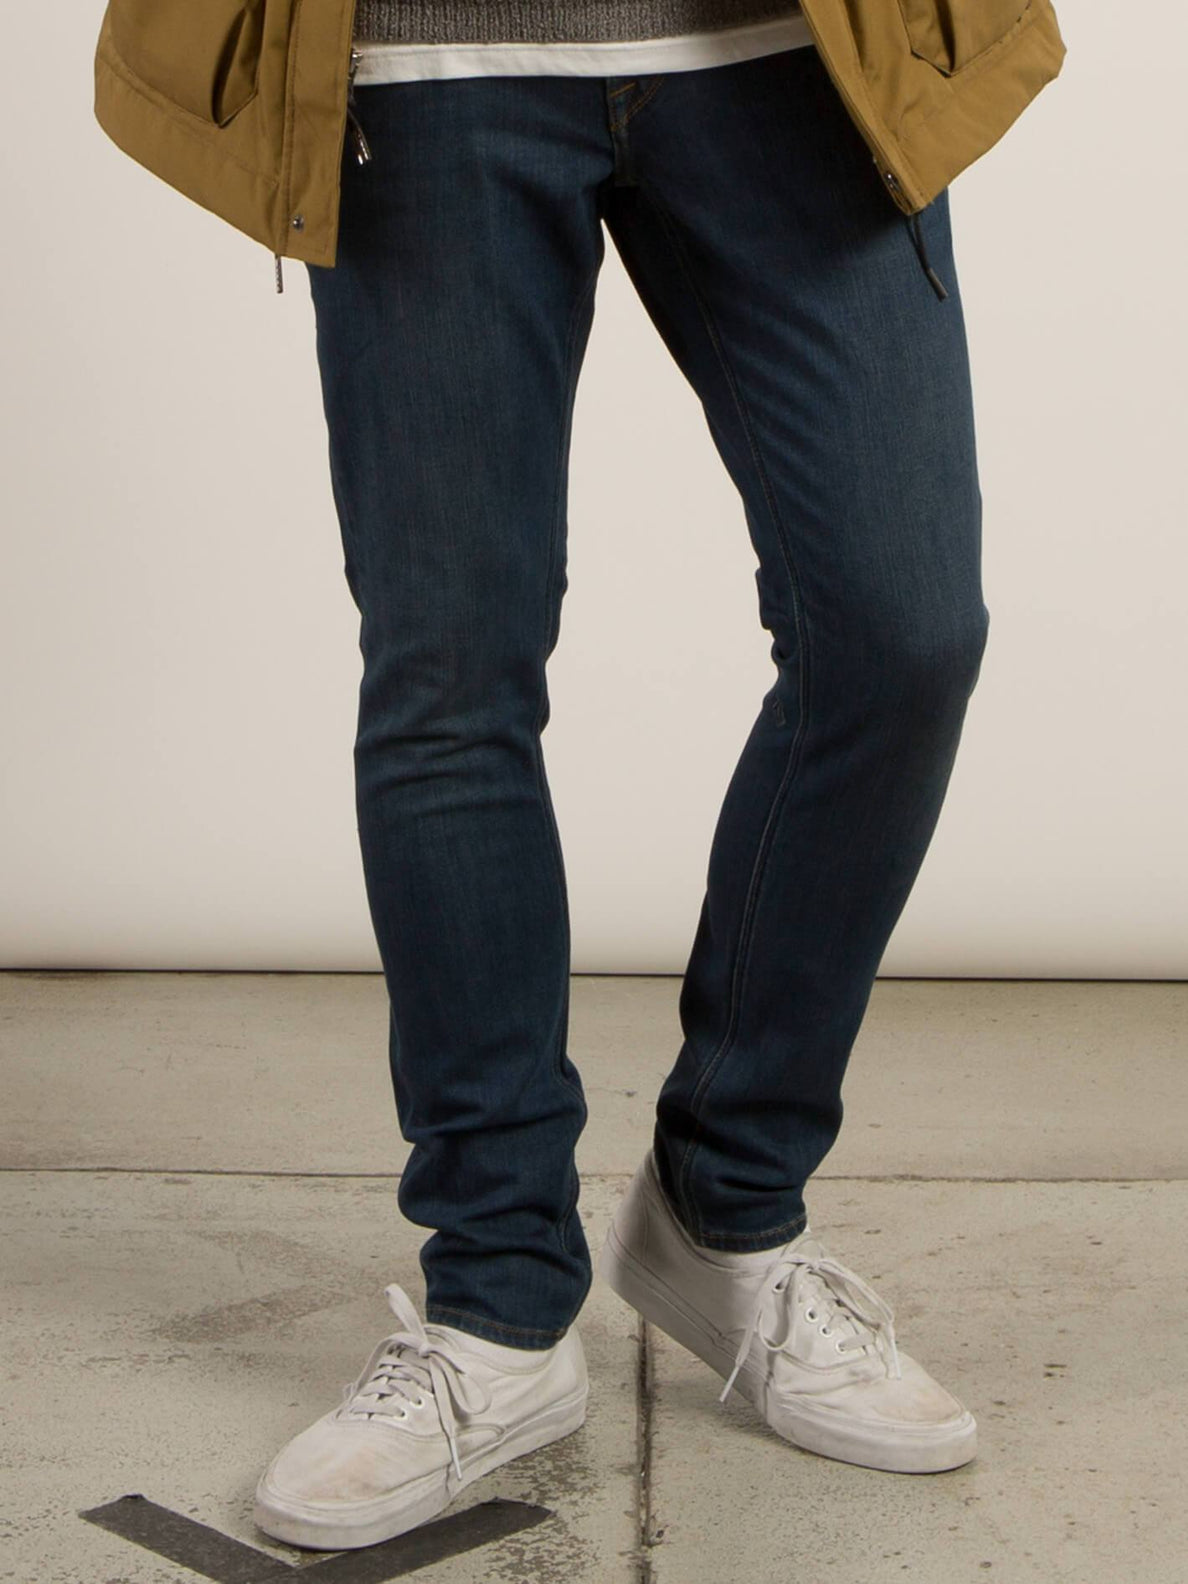 2X4 Tapered Jeans - Dust Bowl Indigo